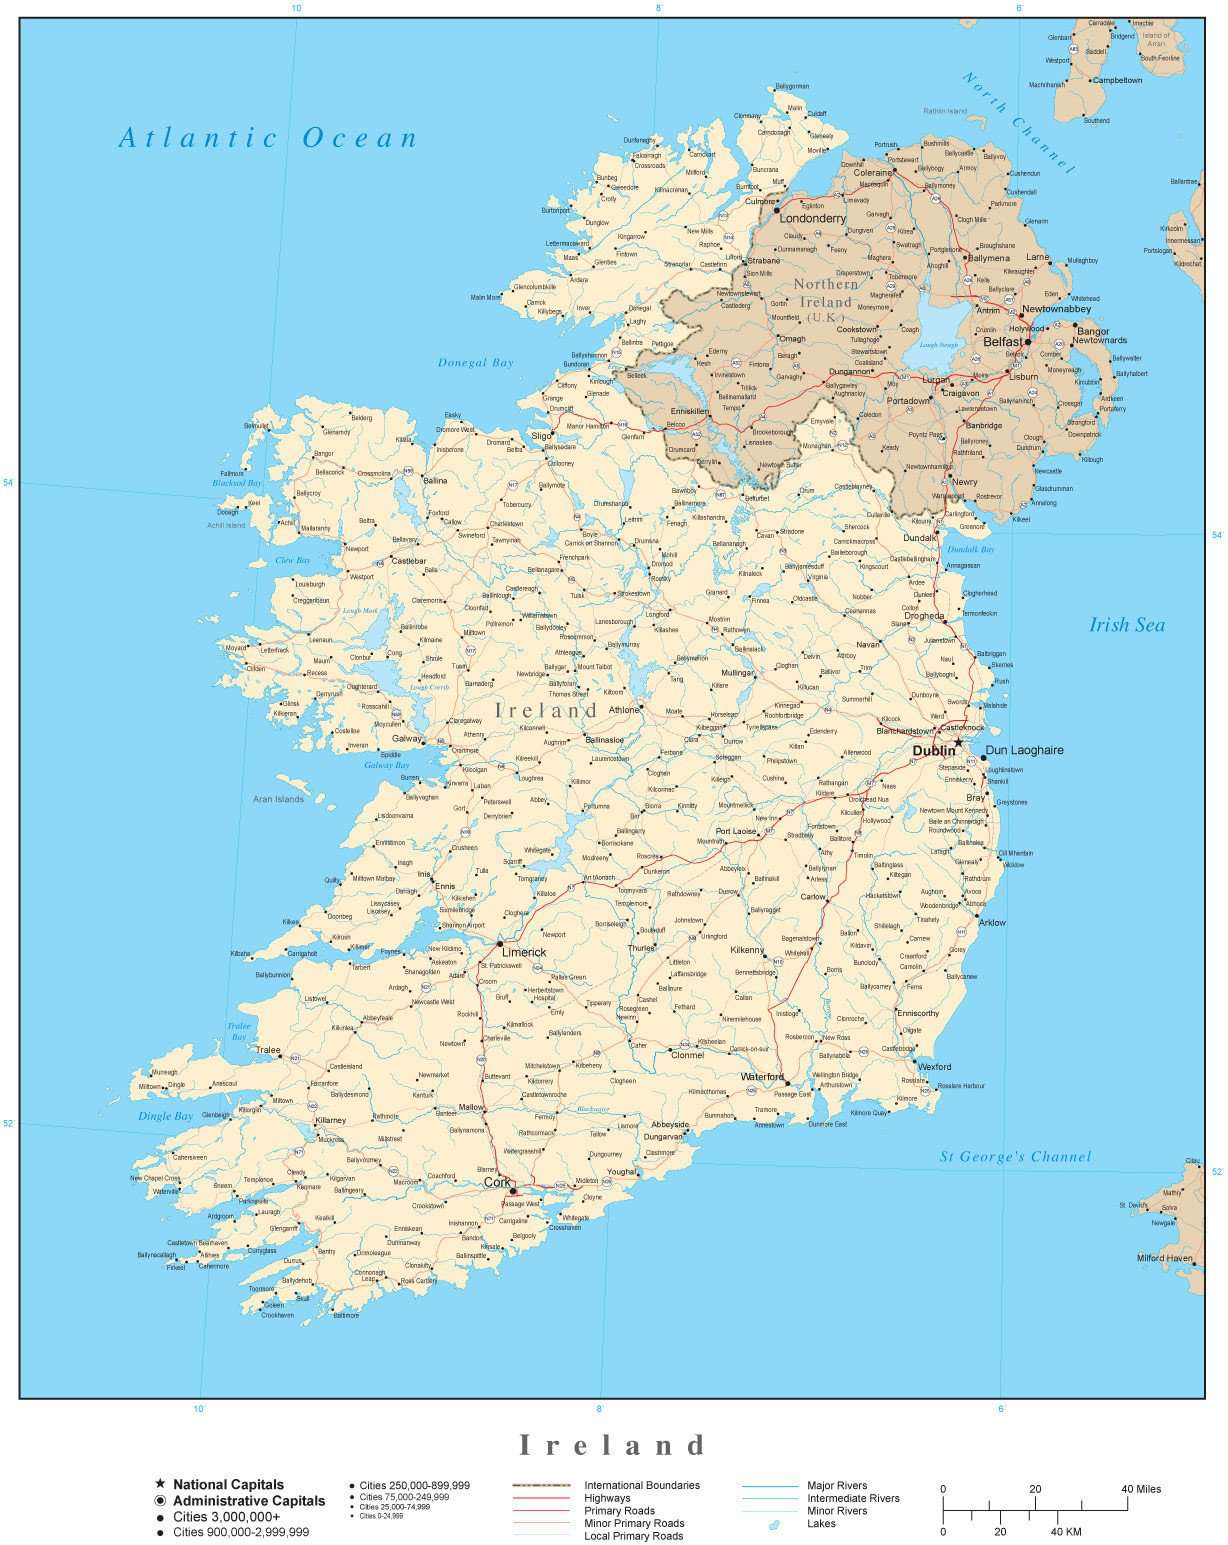 Cities In Ireland Map.Ireland Map In Adobe Illustrator Vector Format Map Resources